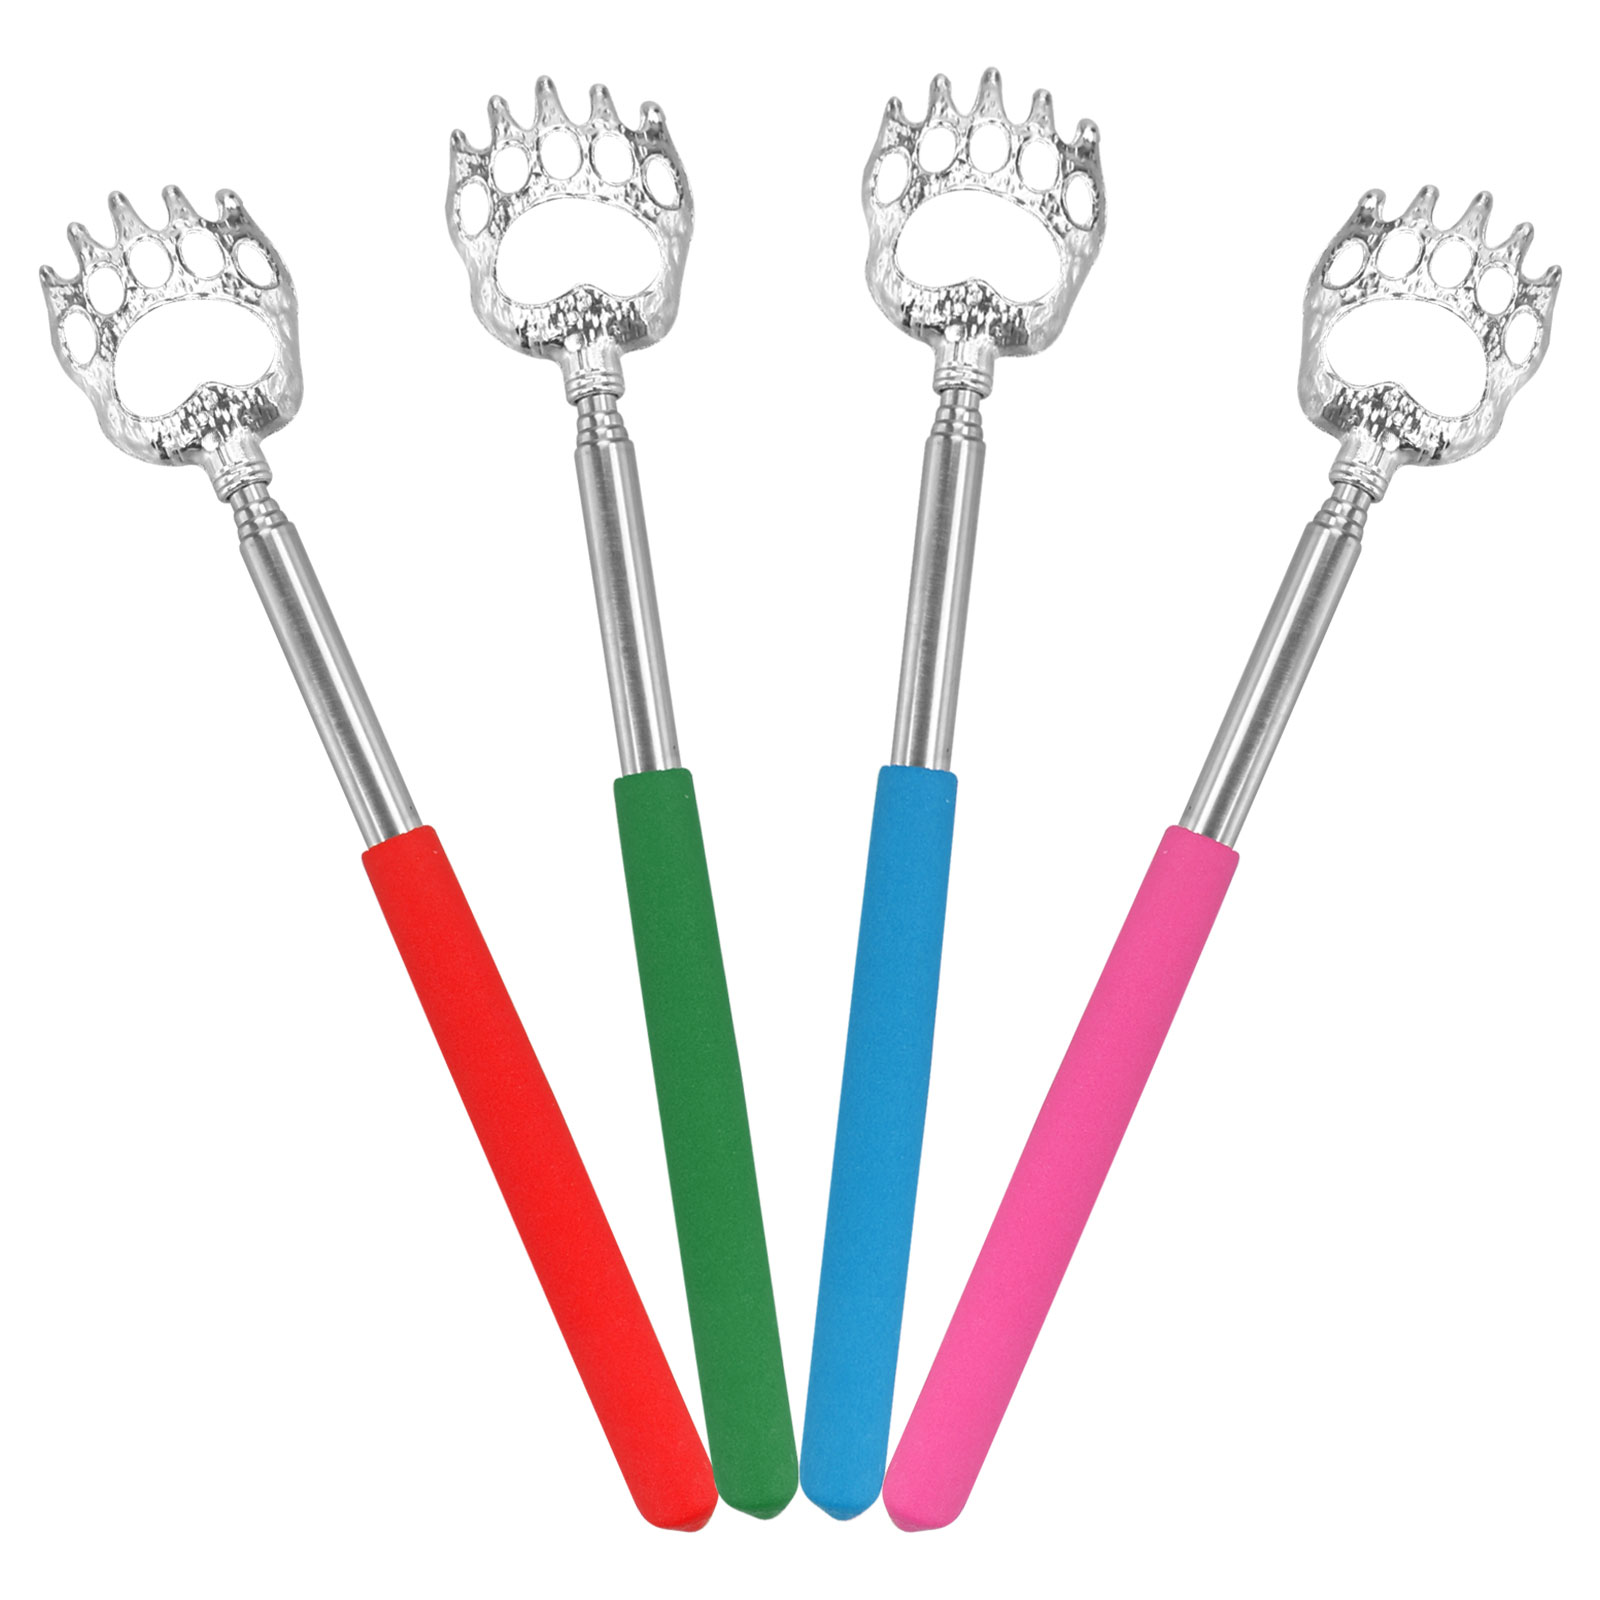 "4-pack 8.7"" Bear Claw Telescopic Back Scratcher Extends Random Pick Itch Relief"